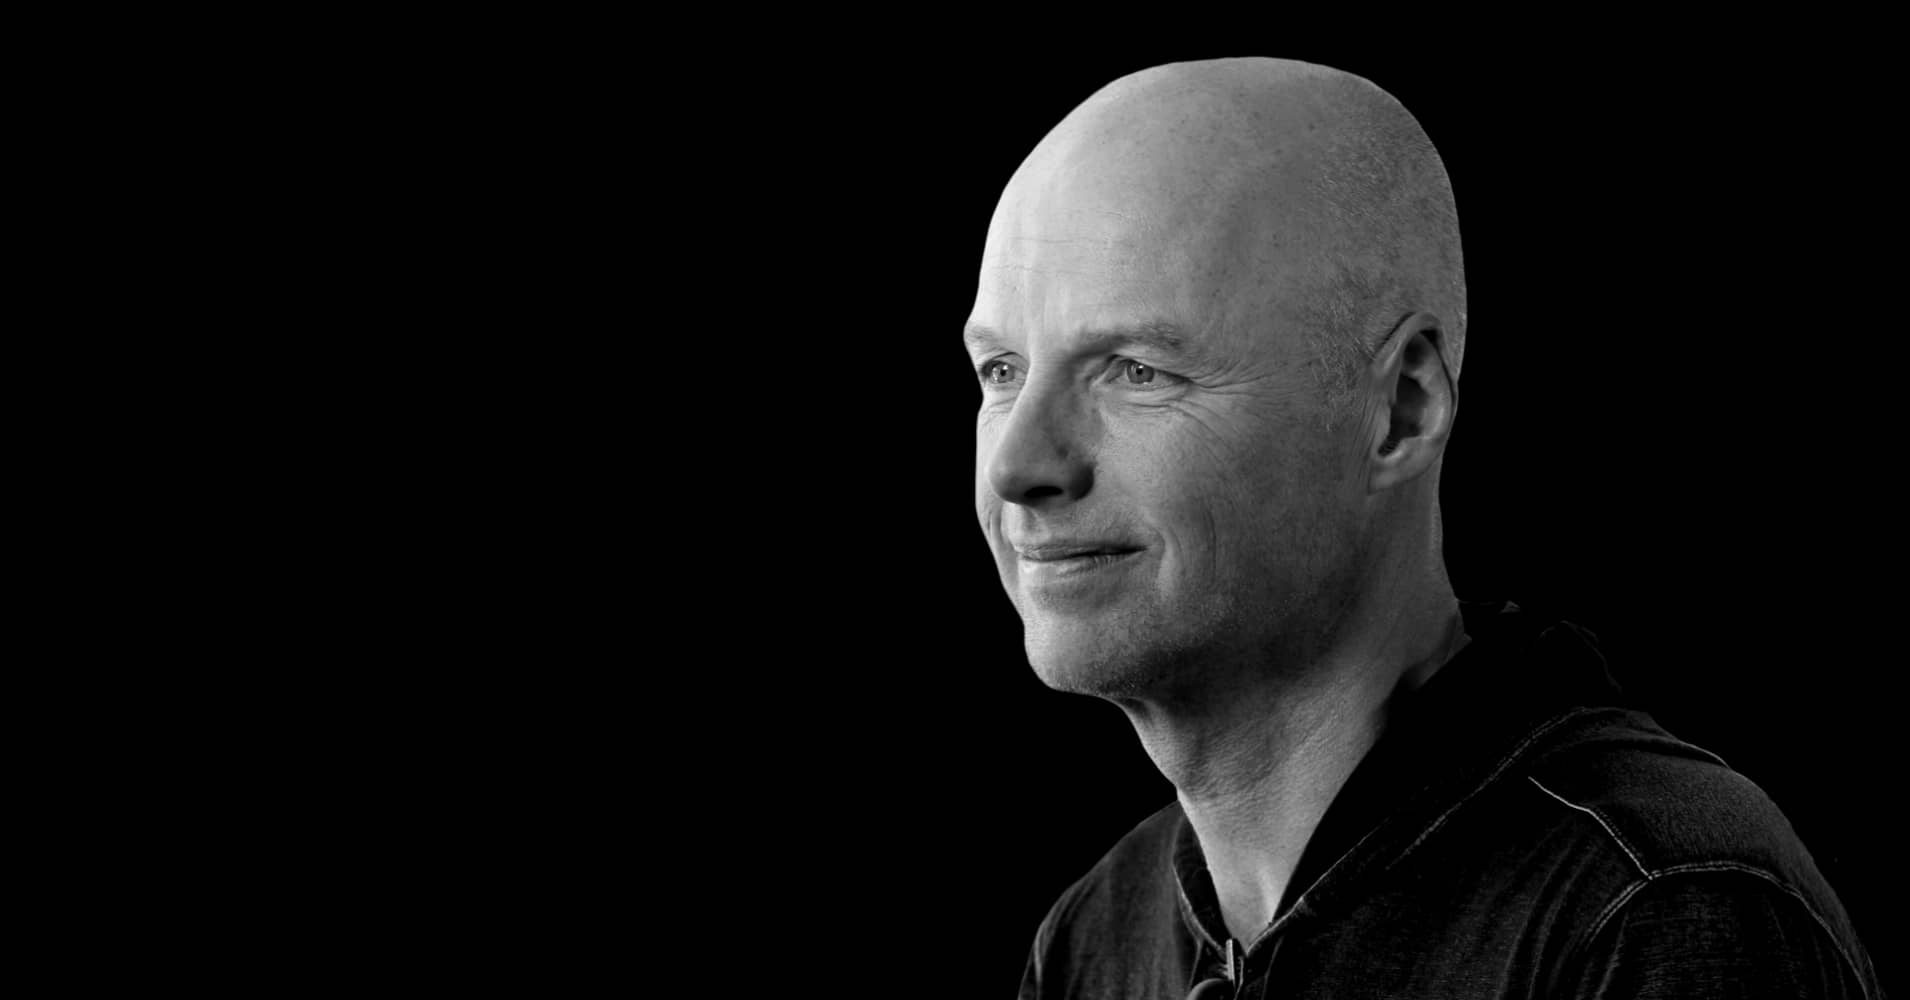 Google X founder Sebastian Thrun: Why I gave up 97 percent of my salary to try to change the world